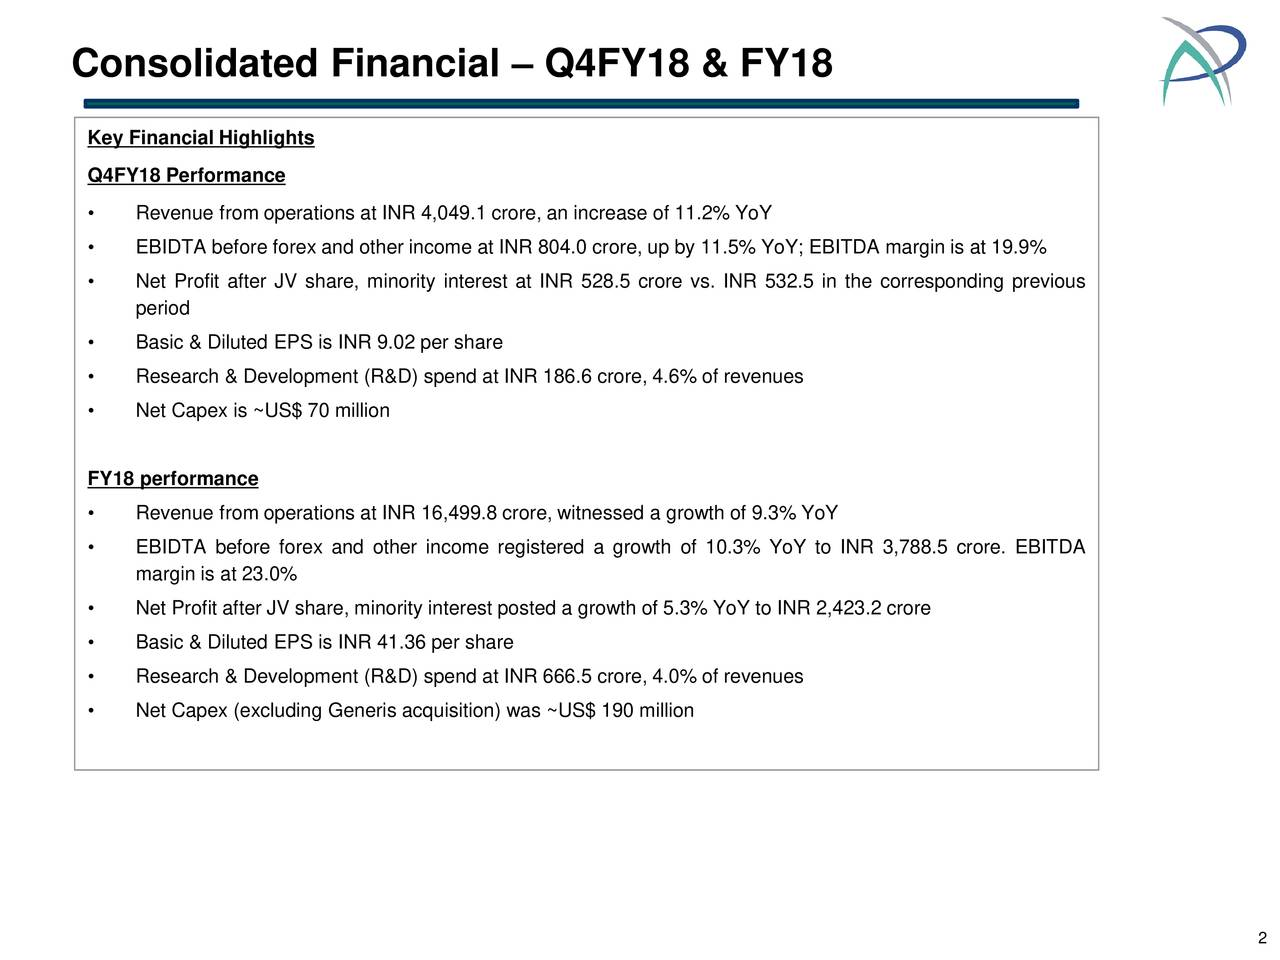 Key Financial Highlights Q4FY18 Performance • Revenue from operations at INR 4,049.1 crore, an increase of 11.2% YoY • EBIDTA before forex and other income at INR 804.0 crore, up by 11.5% YoY; EBITDA margin is at 19.9% • Net Profit after JV share, minority interest at INR 528.5 crore vs. INR 532.5 in the corresponding previous period • Basic & Diluted EPS is INR 9.02 per share • Research & Development (R&D) spend at INR 186.6 crore, 4.6% of revenues • Net Capex is ~US$ 70 million FY18 performance • Revenue from operations at INR 16,499.8 crore, witnessed a growth of 9.3% YoY • EBIDTA before forex and other income registered a growth of 10.3% YoY to INR 3,788.5 crore. EBITDA margin is at 23.0% • Net Profit after JV share, minority interest posted a growth of 5.3% YoY to INR 2,423.2 crore • Basic & Diluted EPS is INR 41.36 per share • Research & Development (R&D) spend at INR 666.5 crore, 4.0% of revenues • Net Capex (excluding Generis acquisition) was ~US$ 190 million 2